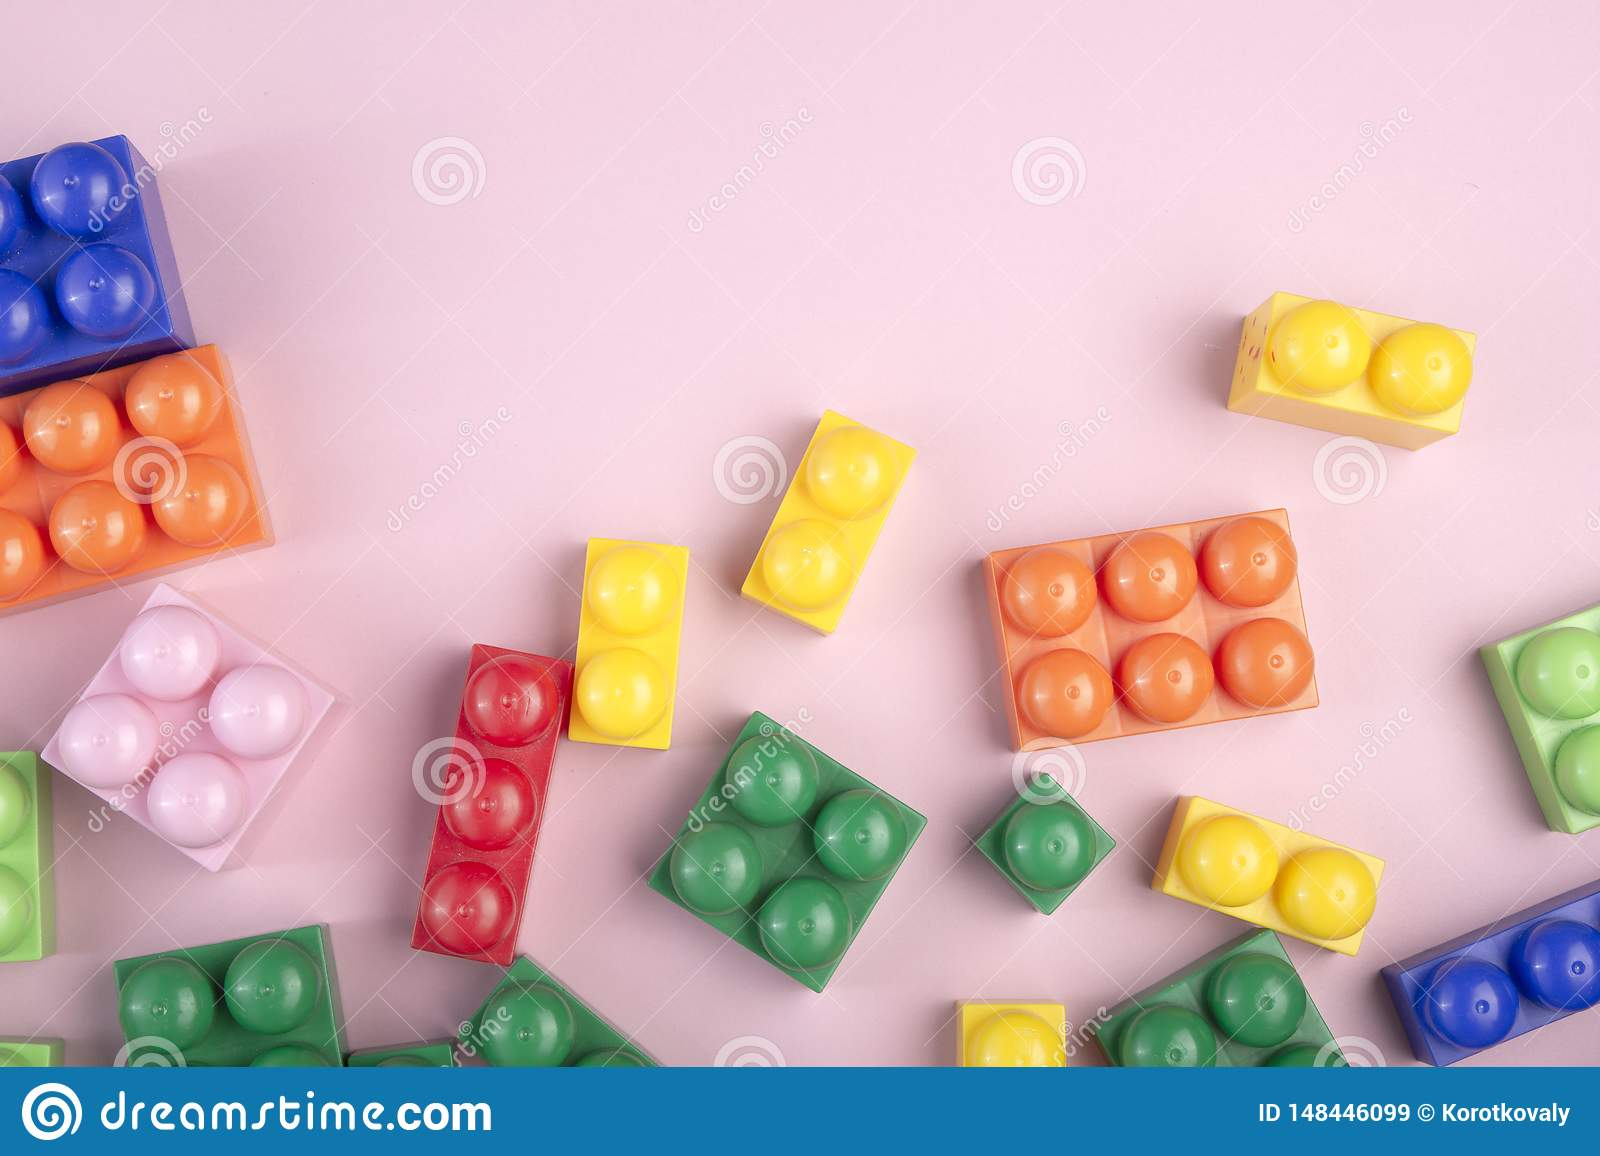 Kids toys background with colorful blocks laying on the pink table. Copy space for text